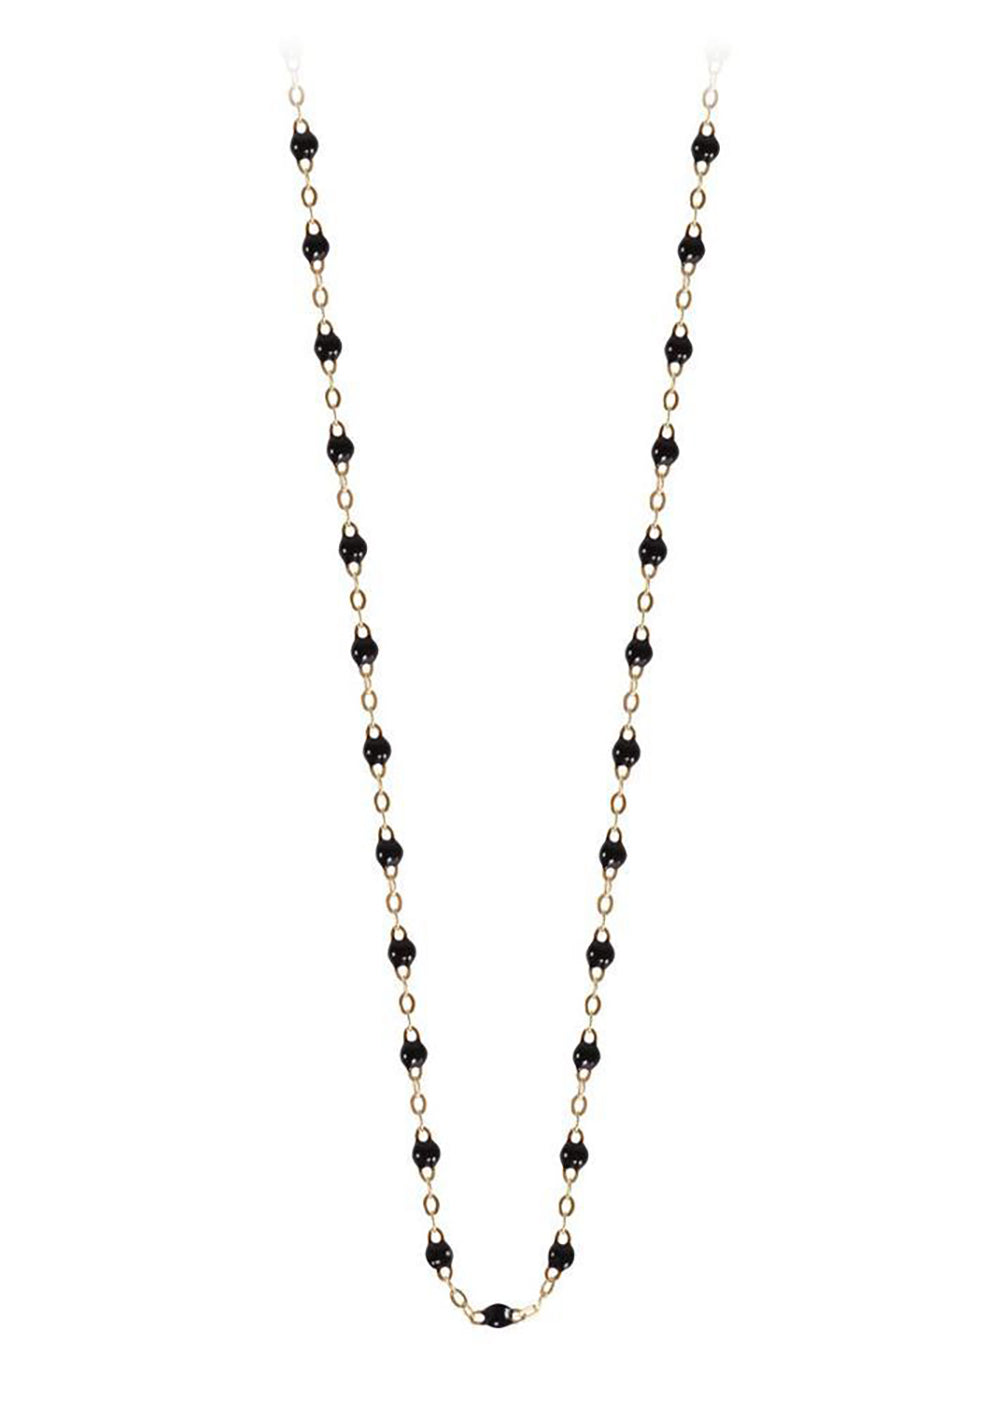 gigiCLOZEAU Jewlery - 18 inch -classic gigi necklace black |18k gold|